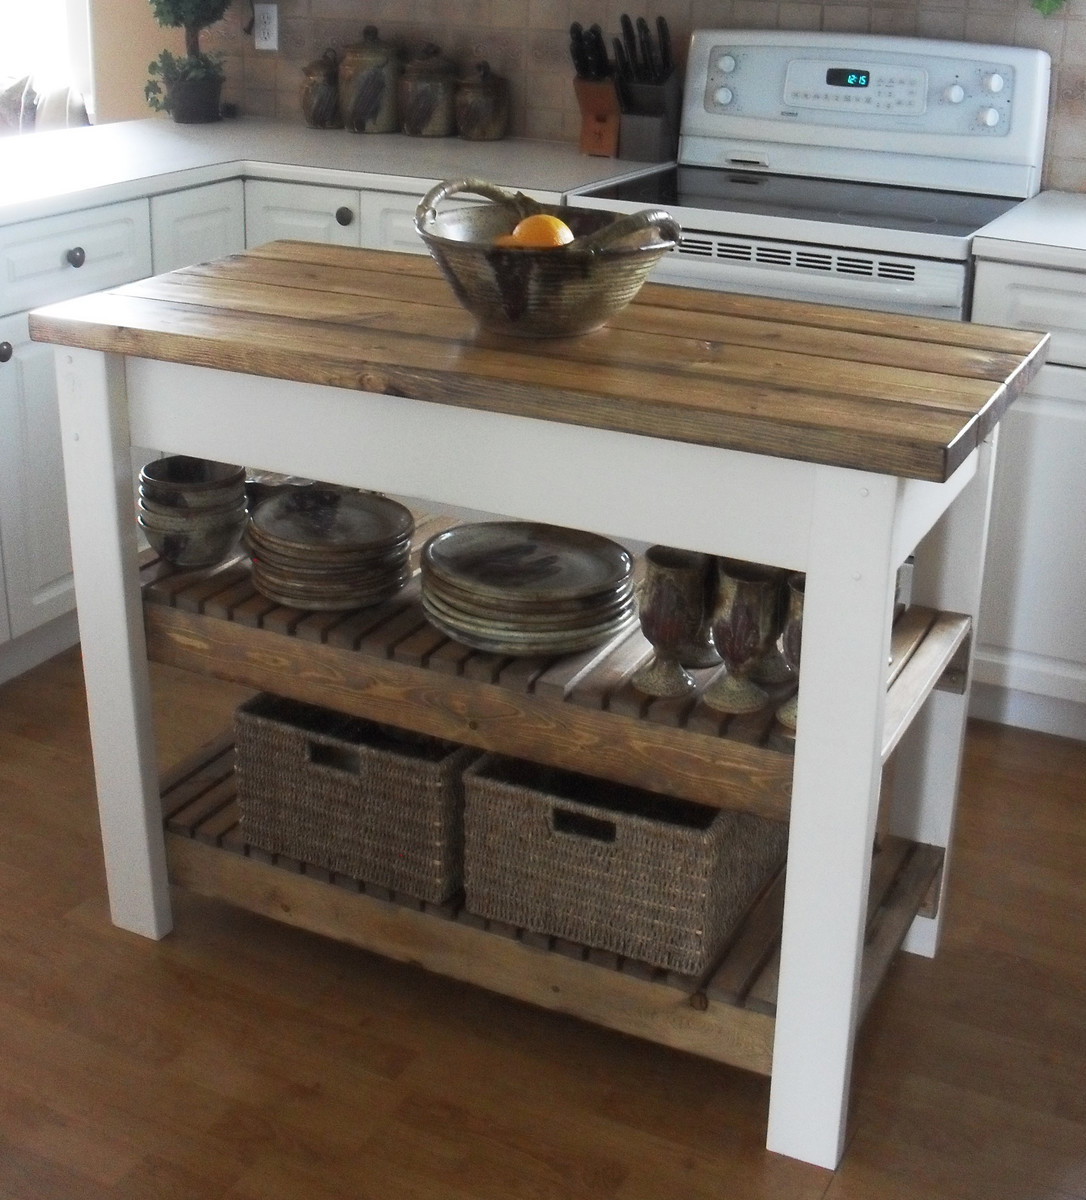 Best ideas about DIY Kitchen Cart Plans . Save or Pin Ana White Now.